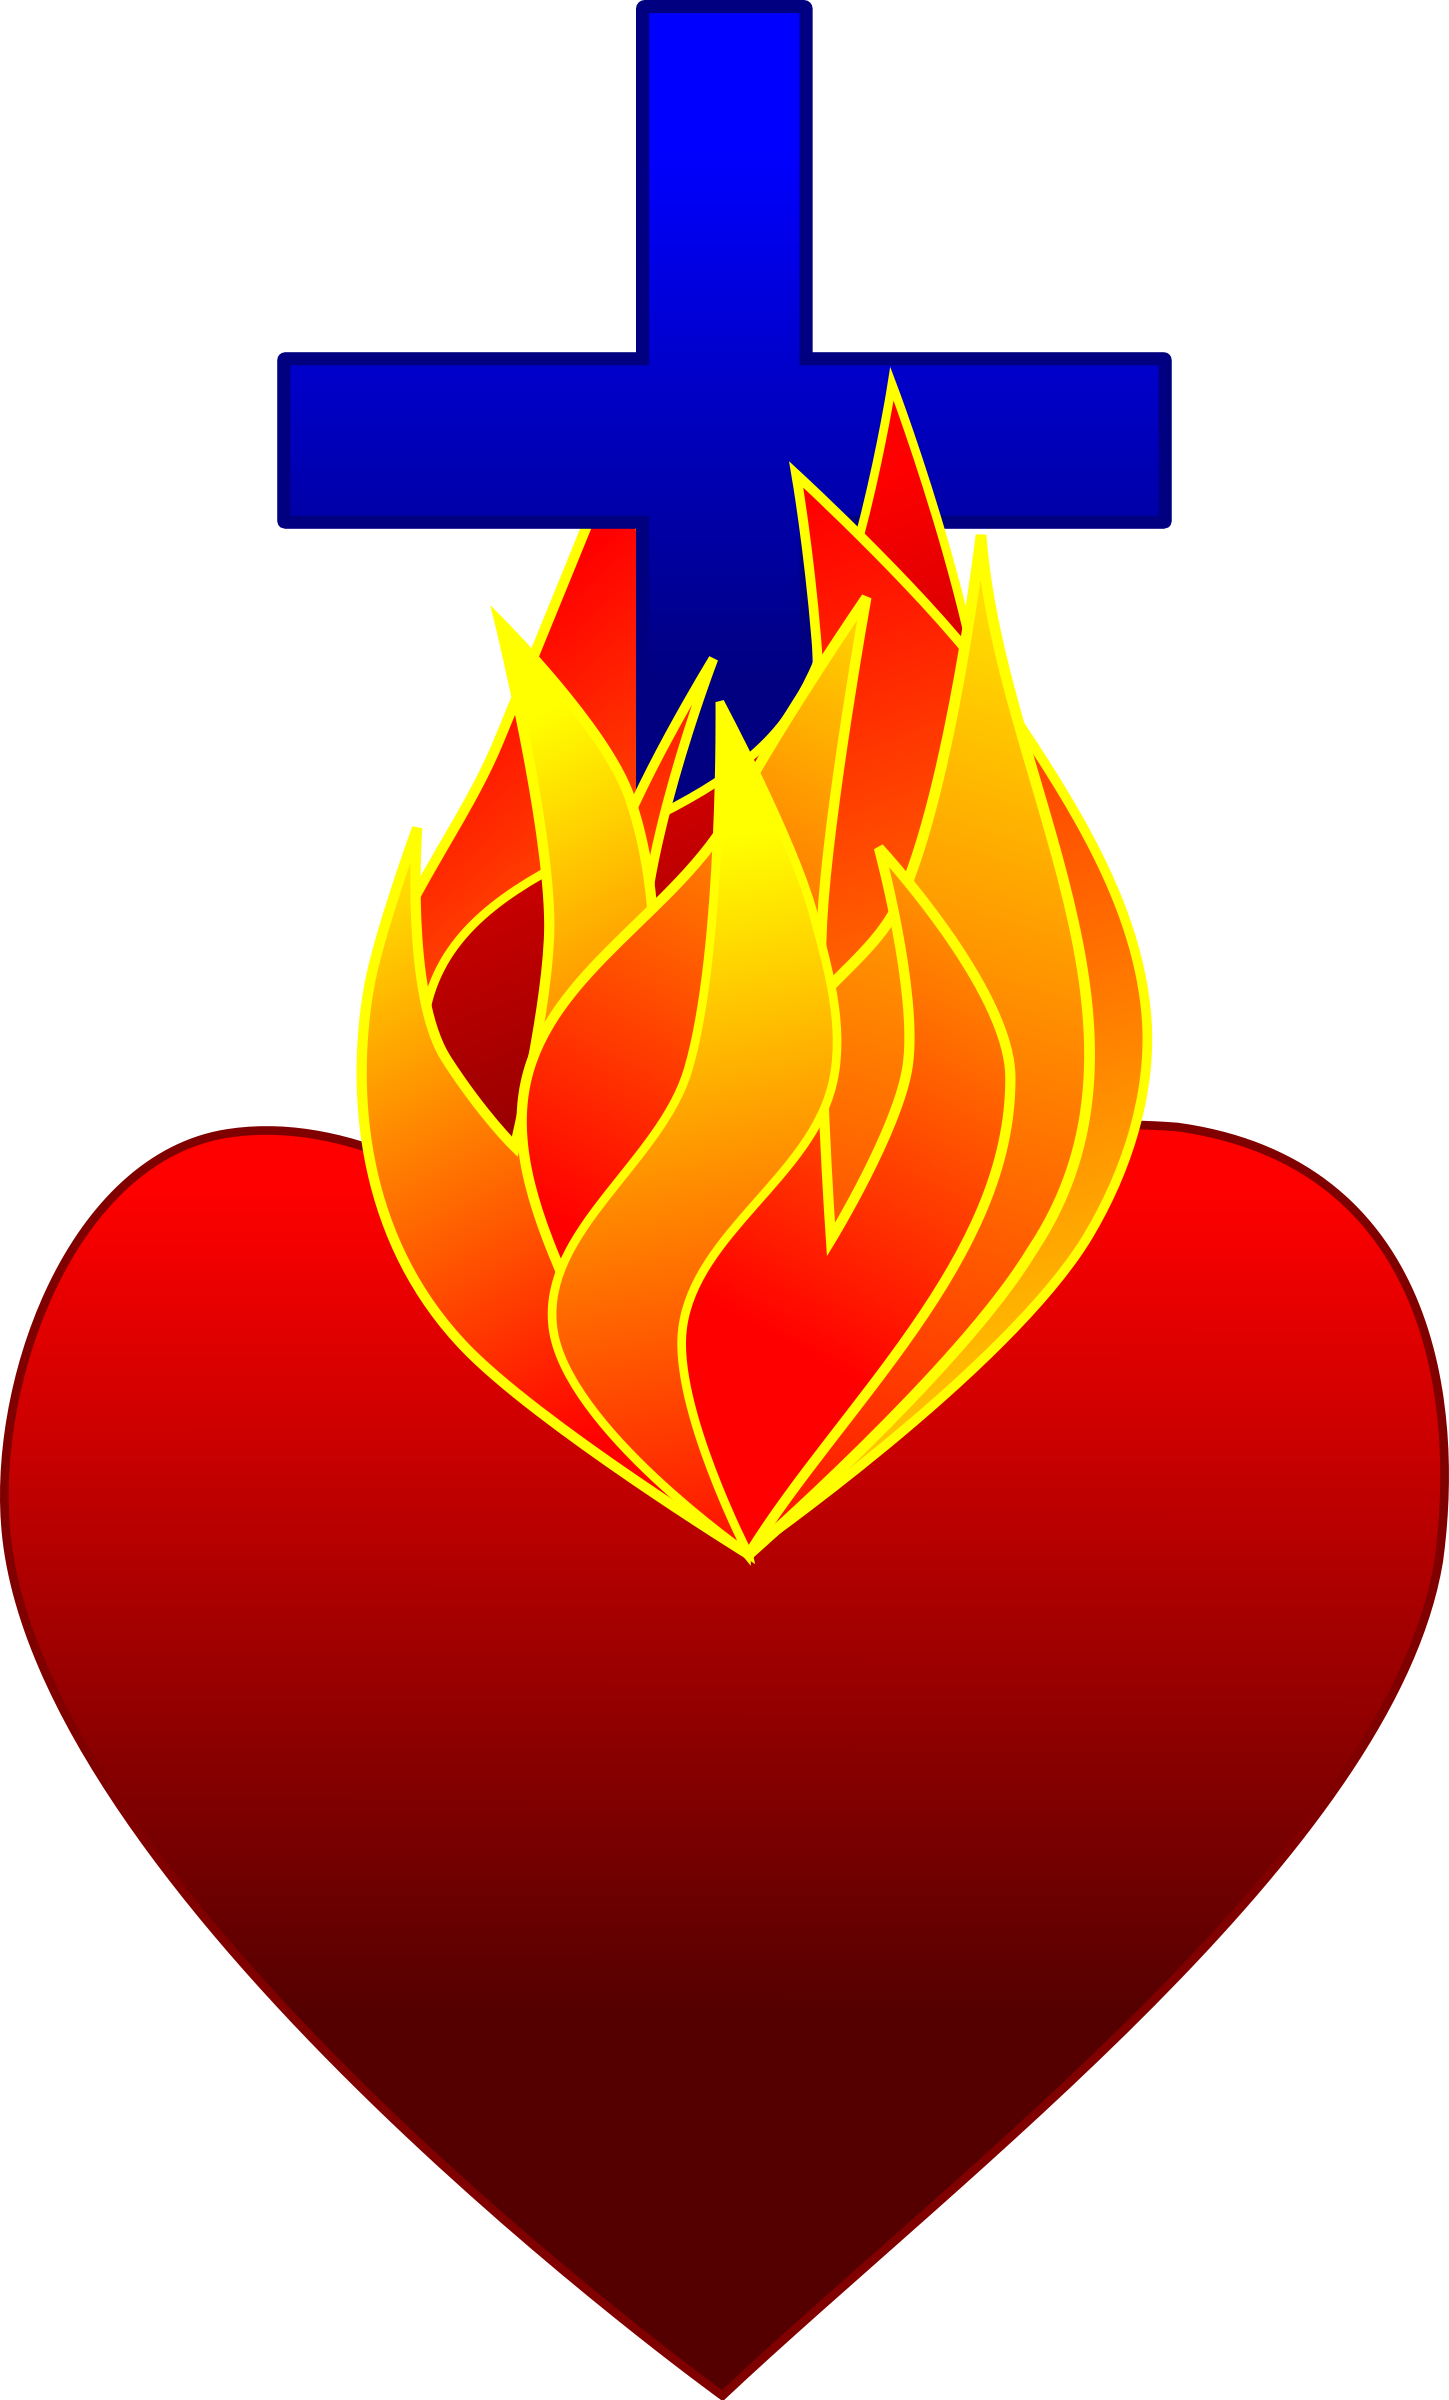 The cross with flames clipart royalty free library Free Flame Heart Cliparts, Download Free Clip Art, Free Clip ... royalty free library